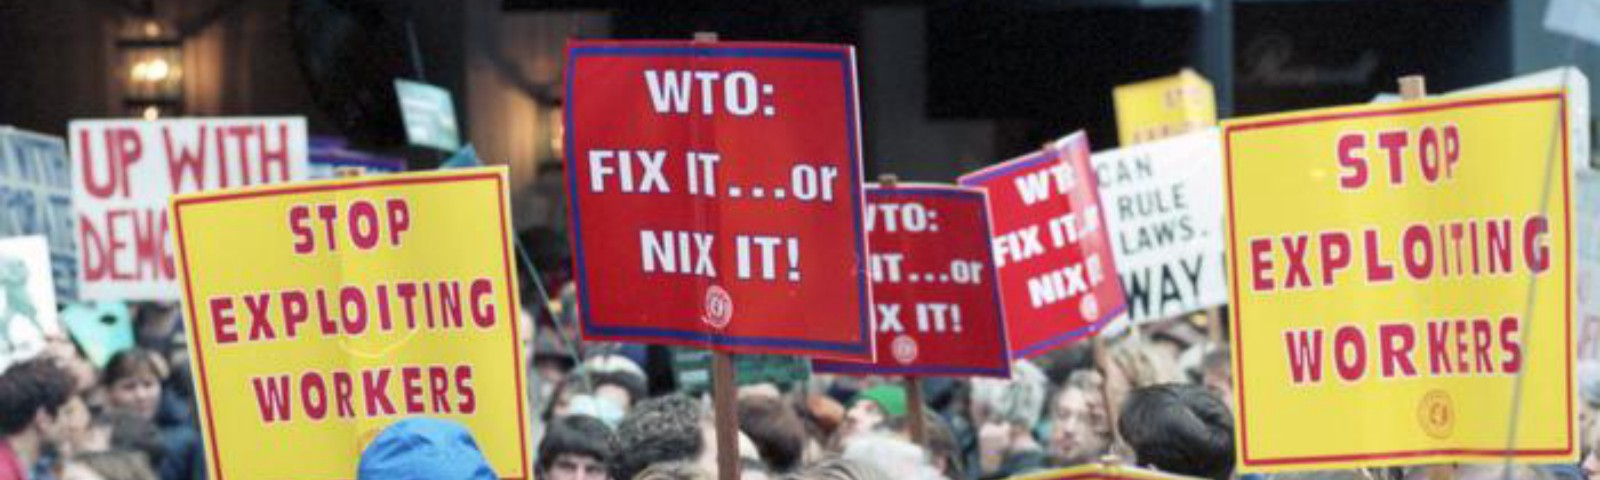 Crowd on 7th Avenue in Seattle, Washington Nov. 29, 1999 protesting against the World Trade Organization.